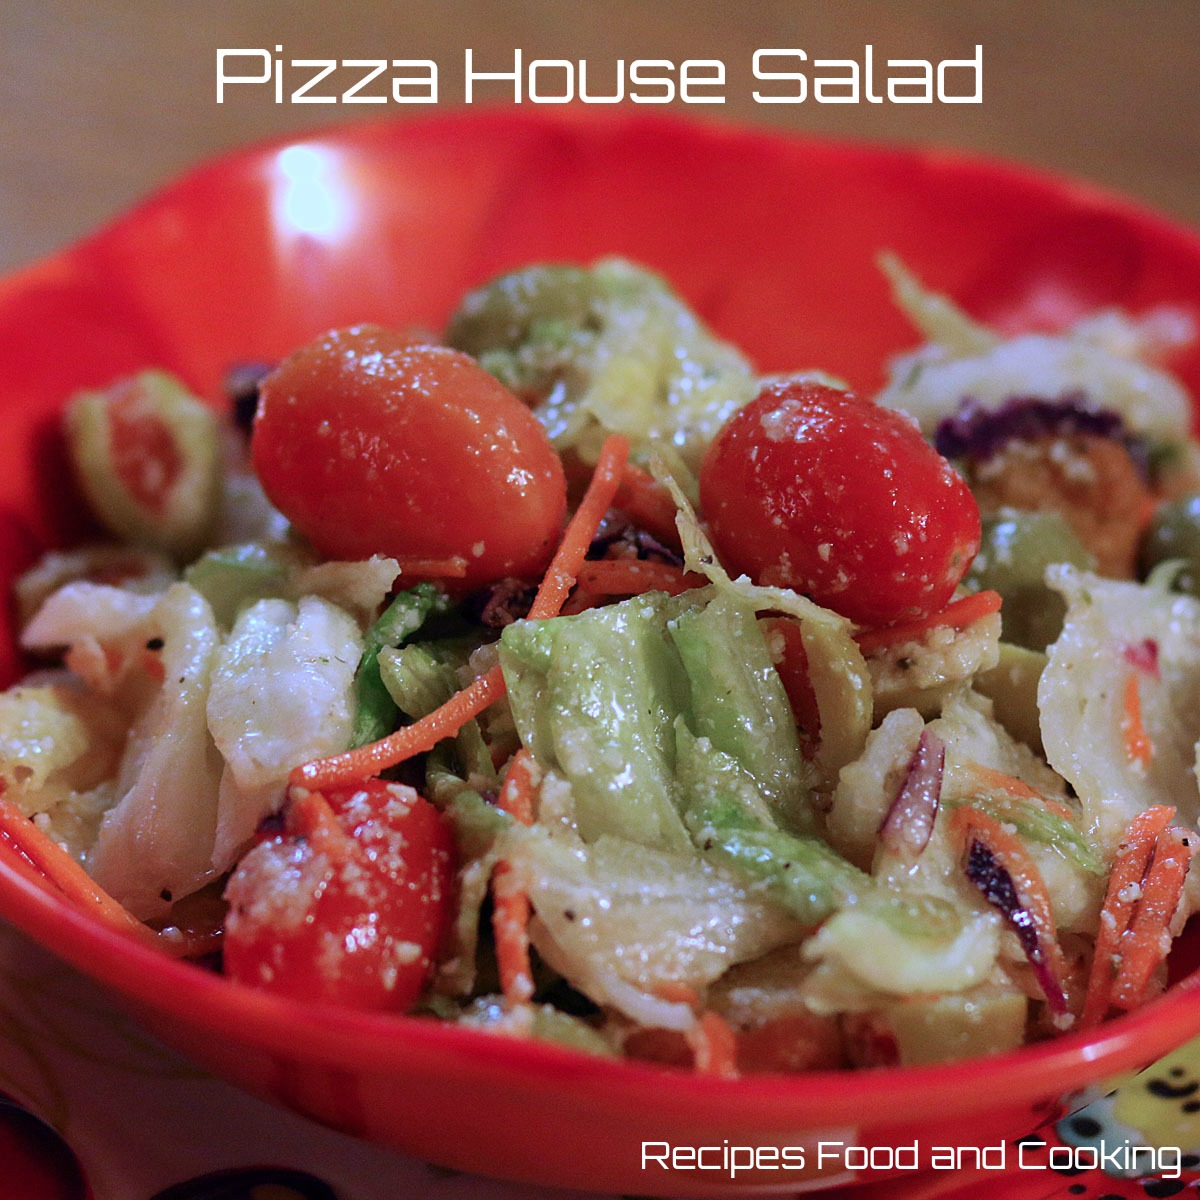 Pizza House Salad